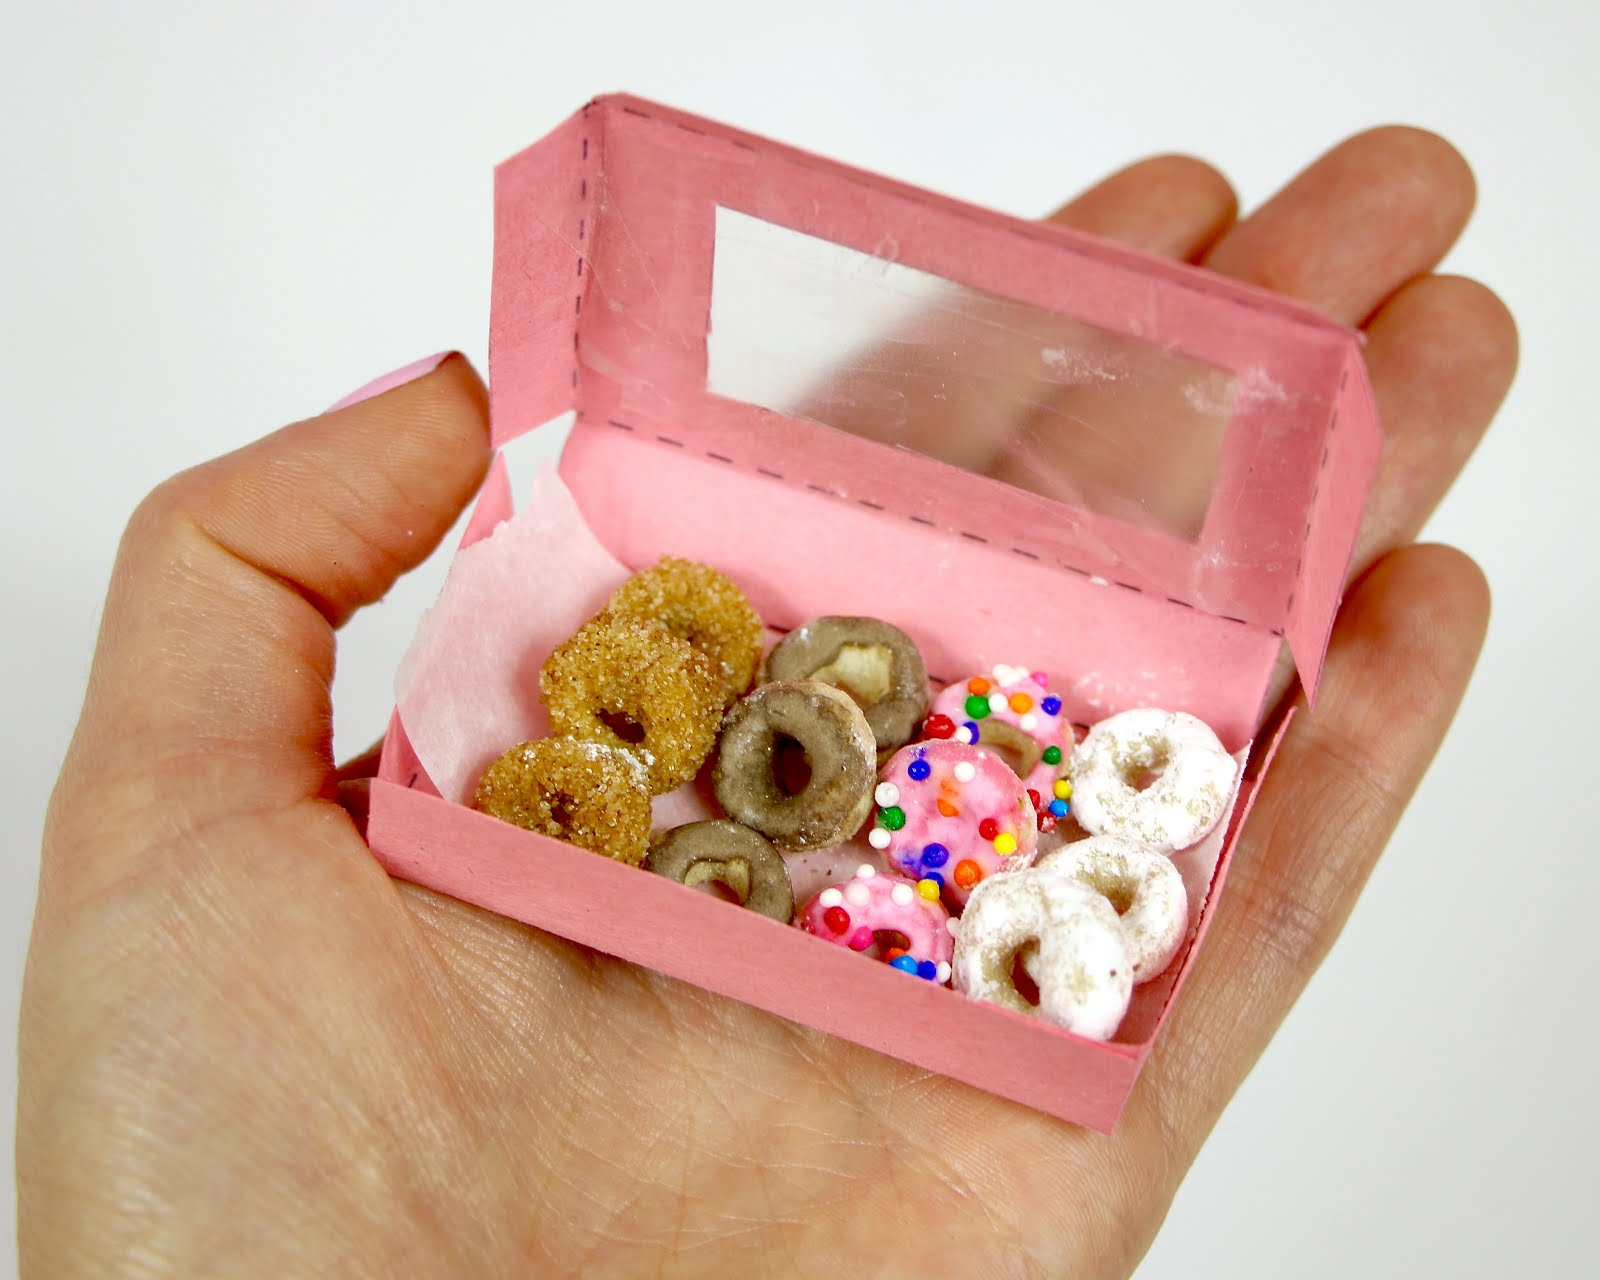 Video Miniature Cheerio Doughnuts Donut Sprinkles Lindsay Ann Bakes On The Go Pink How Much Fun Do These Turn Out Once You Put It All Together Can Create Just About Any Flavor Like Too Which Is Your Favorite